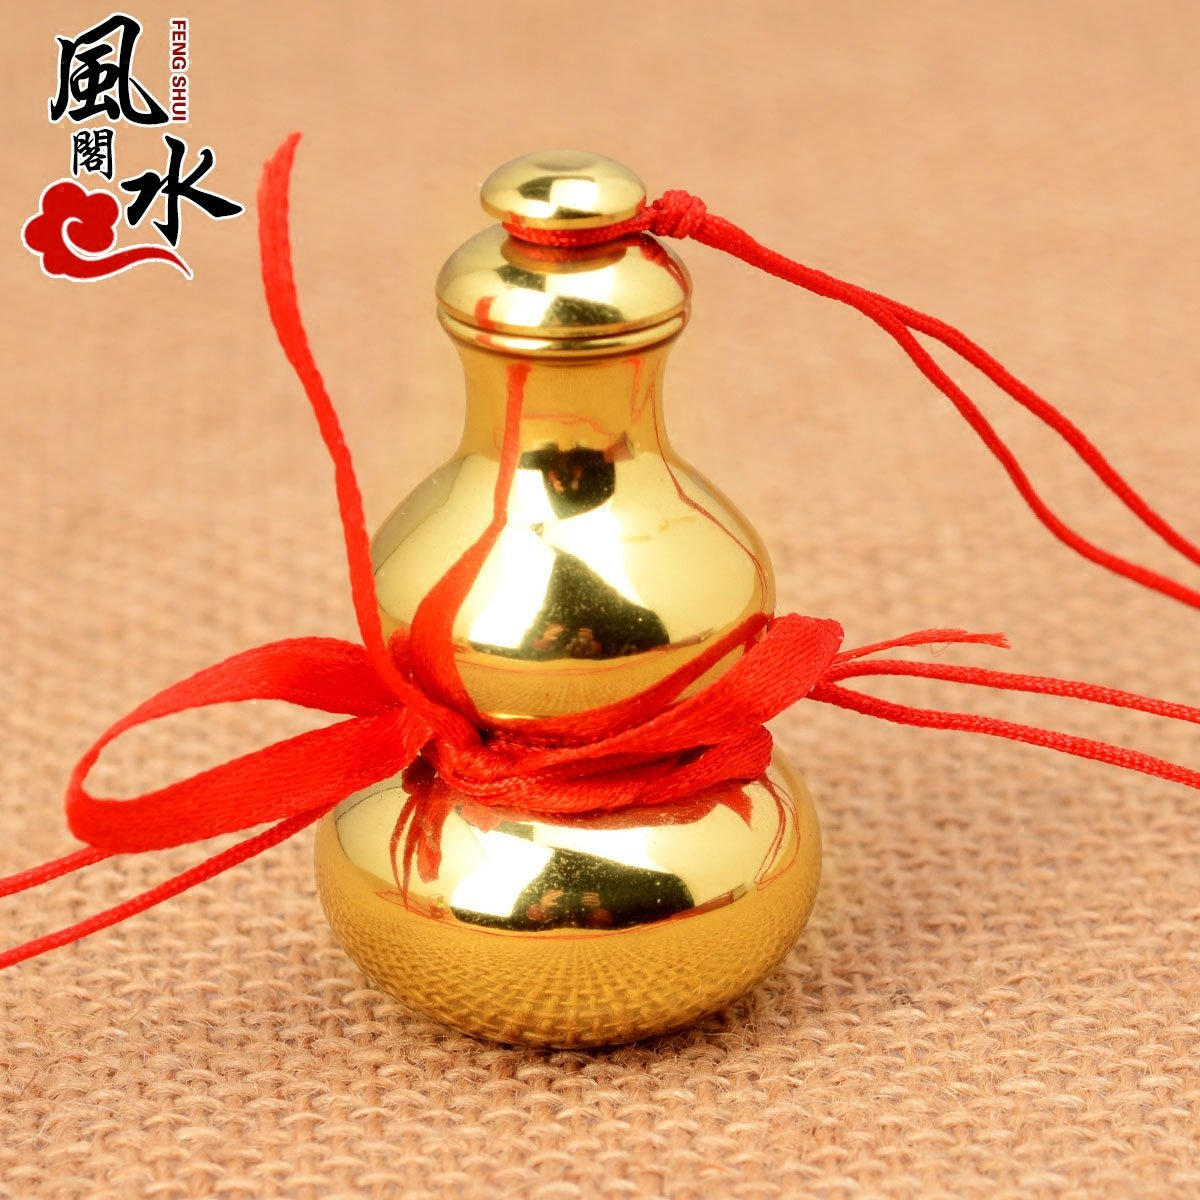 Feng shui court opening gossip copper gourd ornaments feng shui shipping home craft jewelry home furnishings